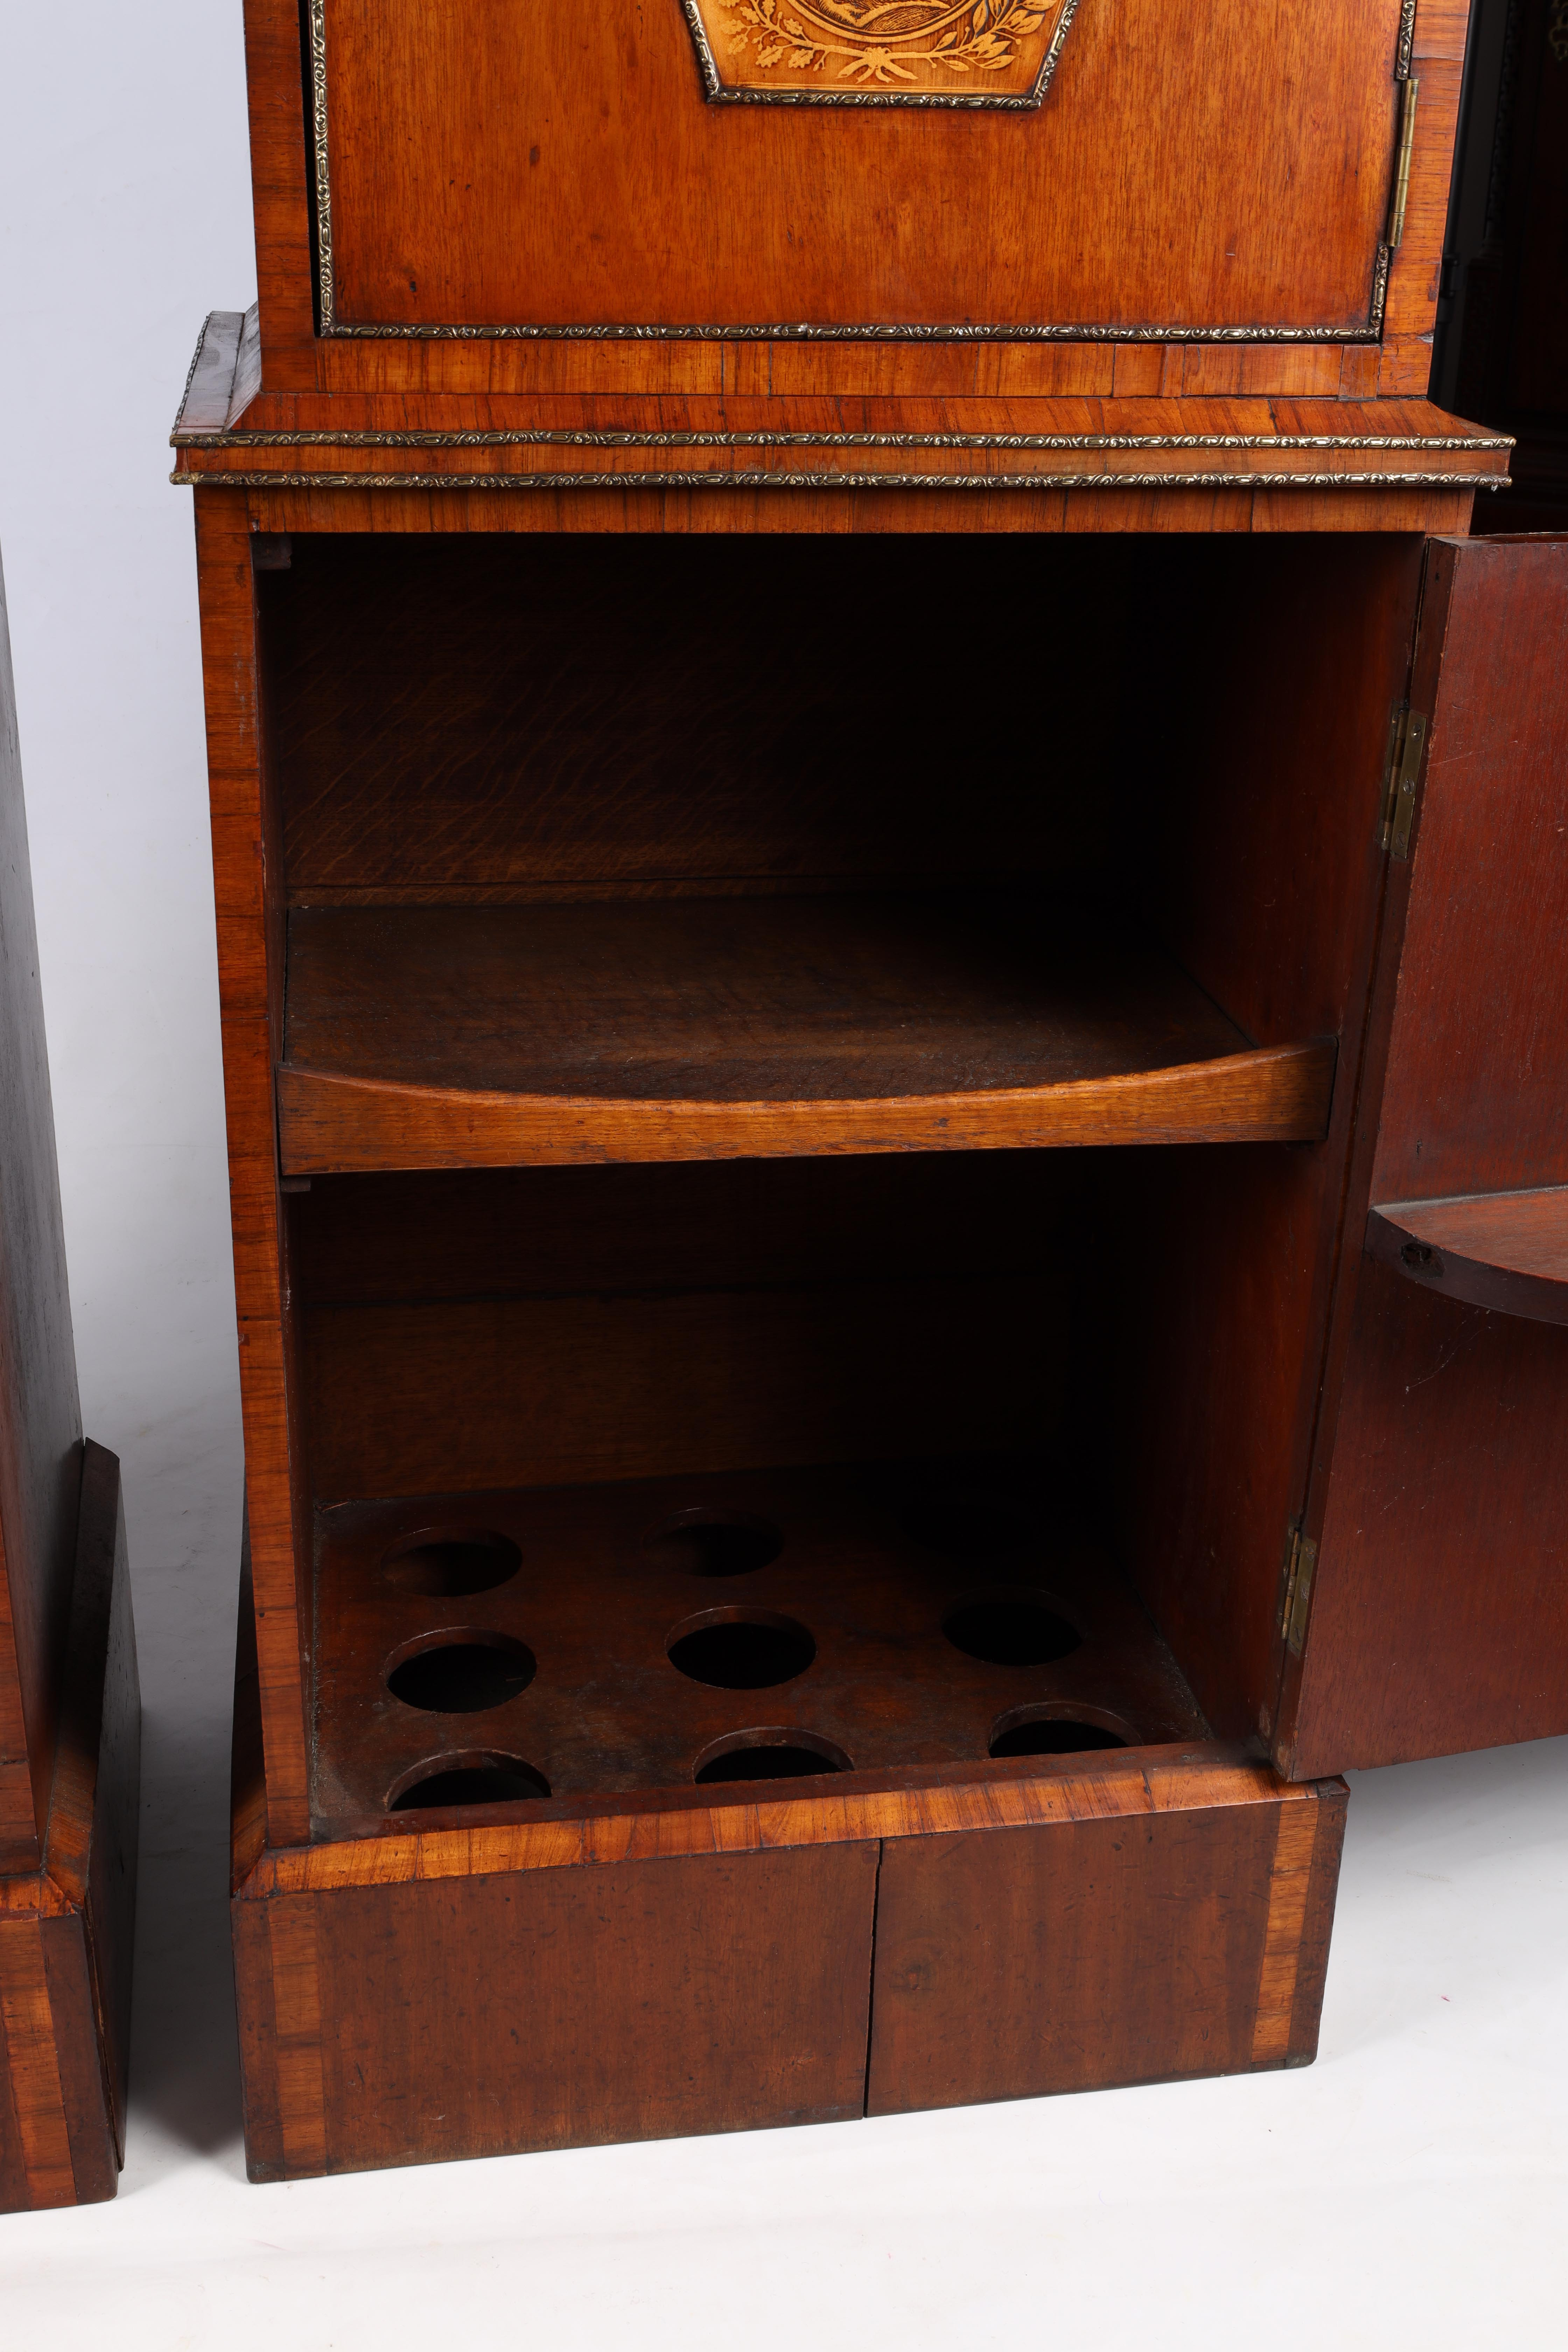 A LARGE PAIR OF GEORGE III KINGWOOD BANDED MAHOGANY PEDESTALS with unusual pen work panels depicting - Image 6 of 11